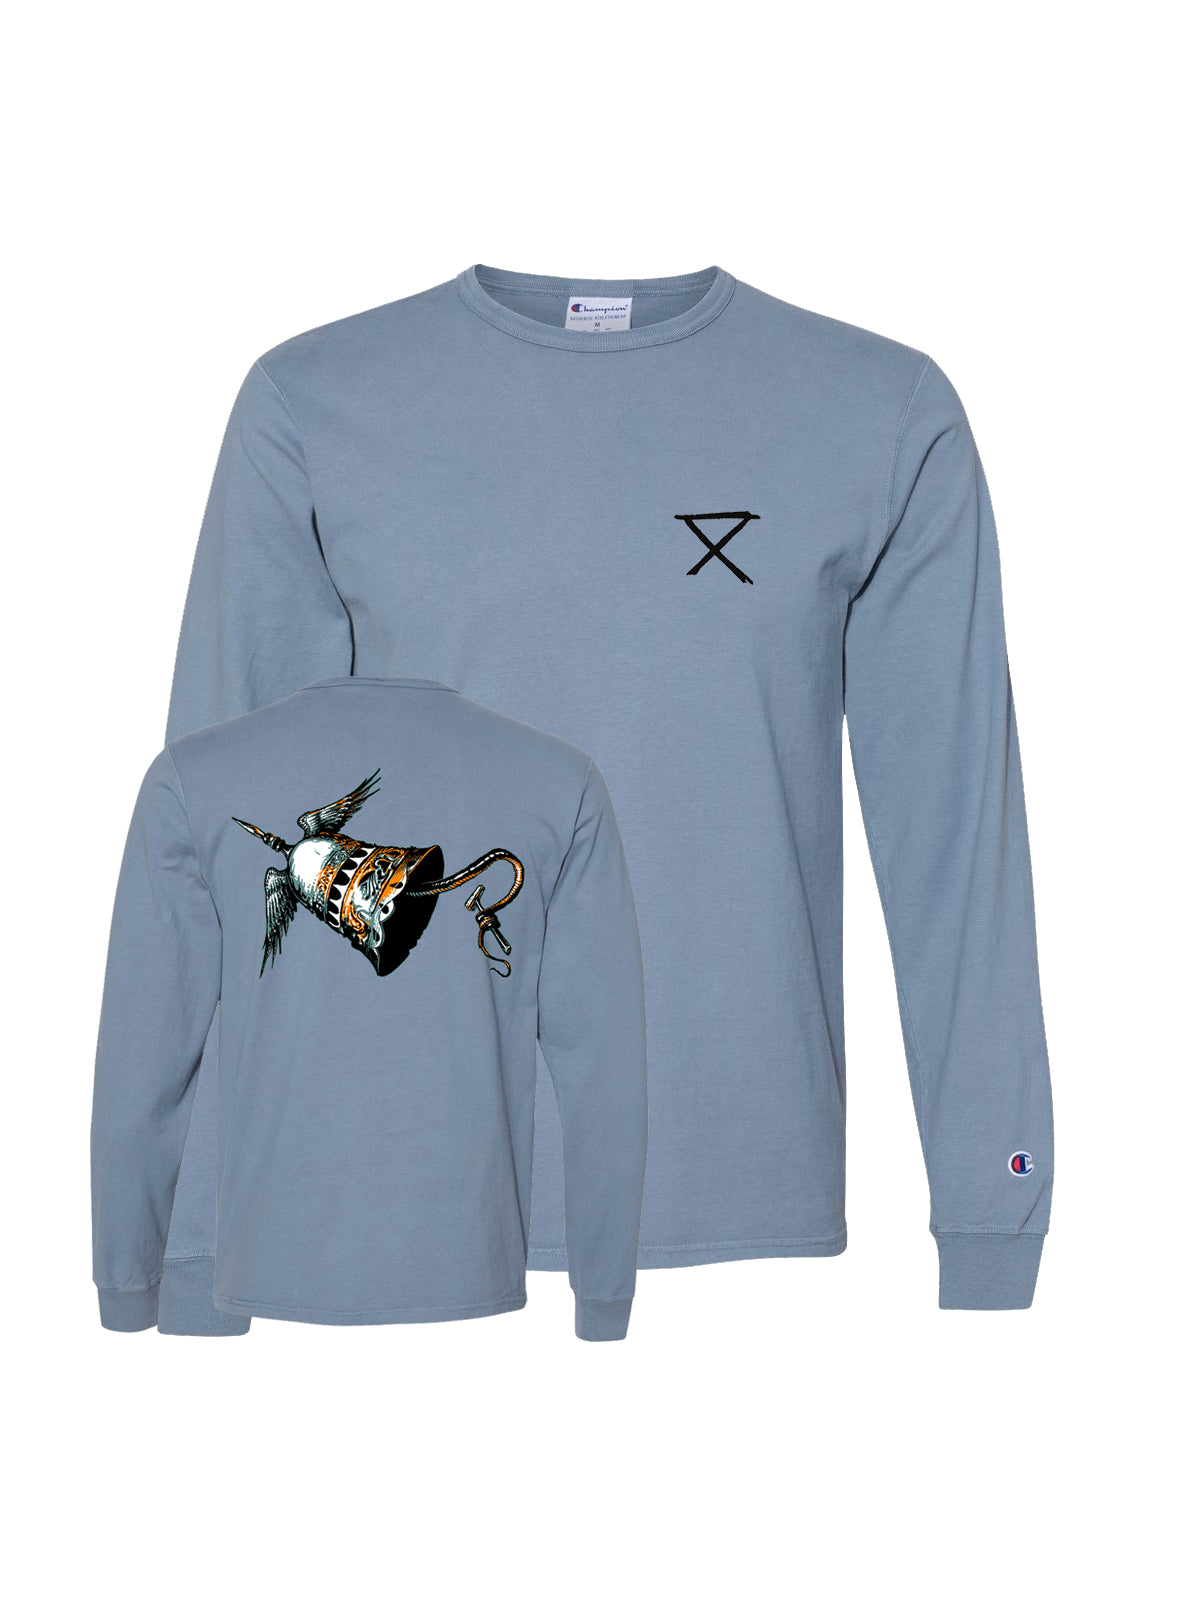 Circa Survive - Bell Garment Dyed Longsleeve - SHIPS MAY 18 - Merch Limited